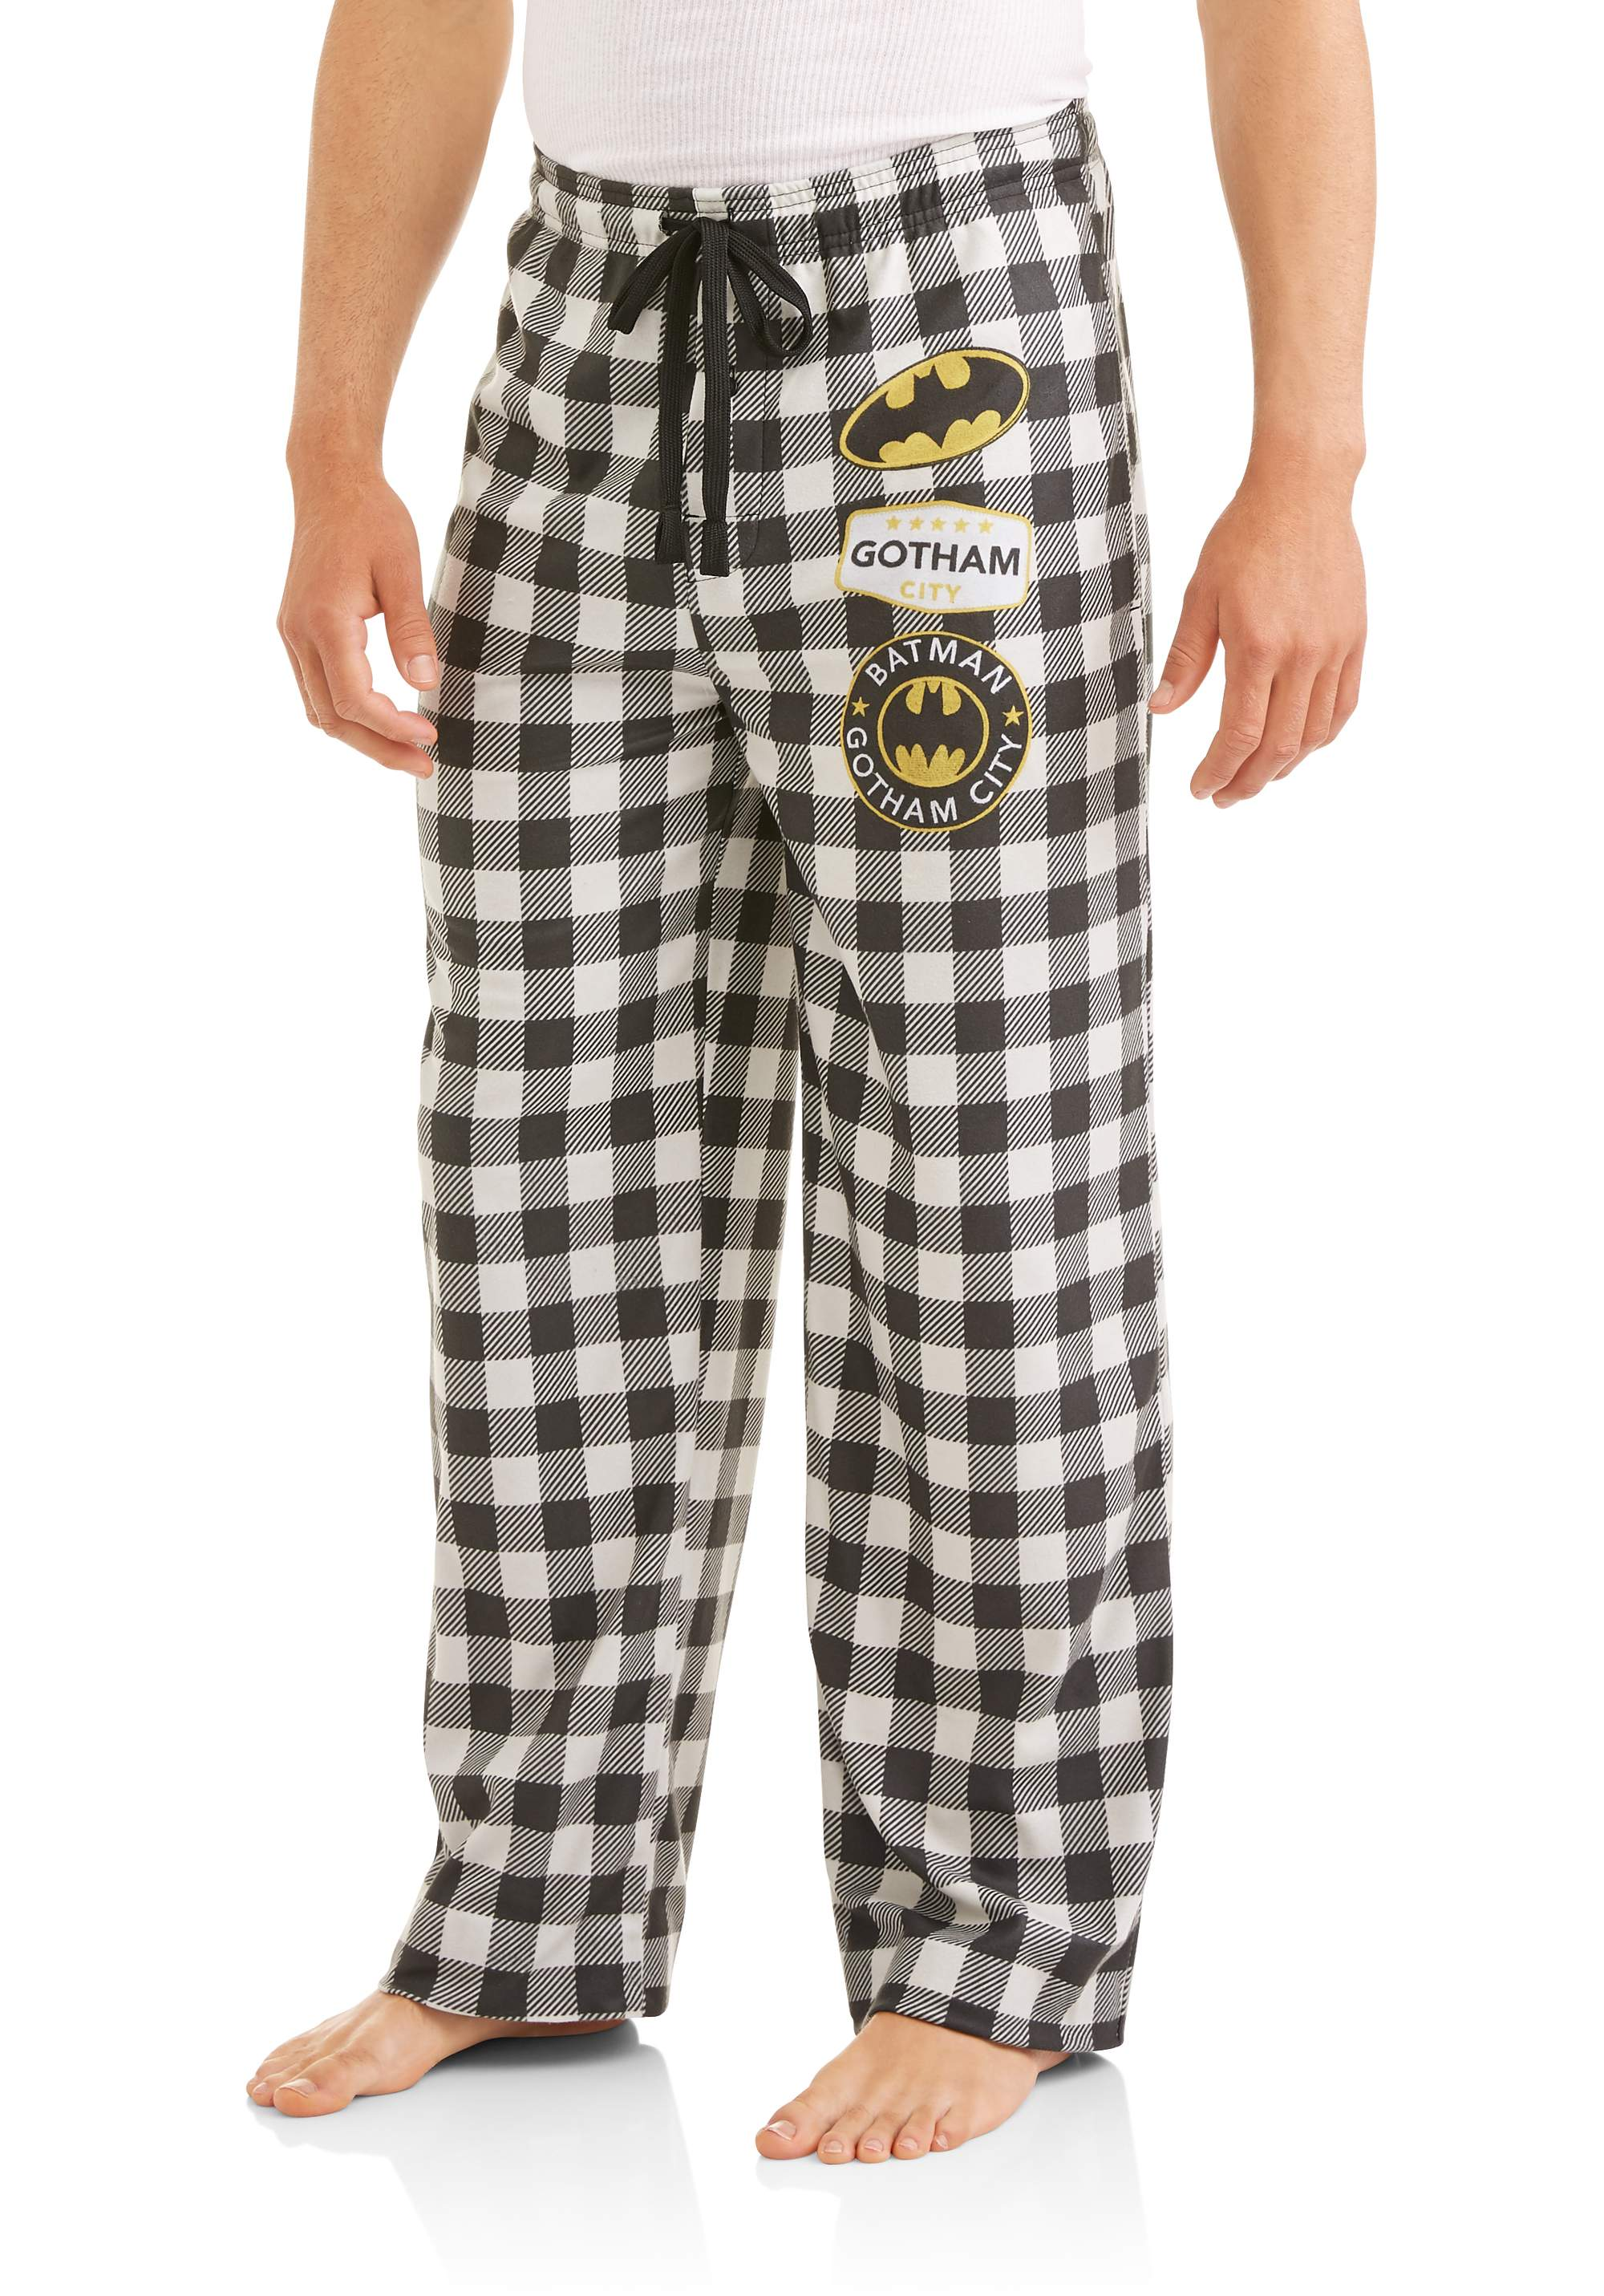 DC Comics Batman Gotham City Mens Big and Tall Flannel Buffalo Plaid Pajama Lounge Pants